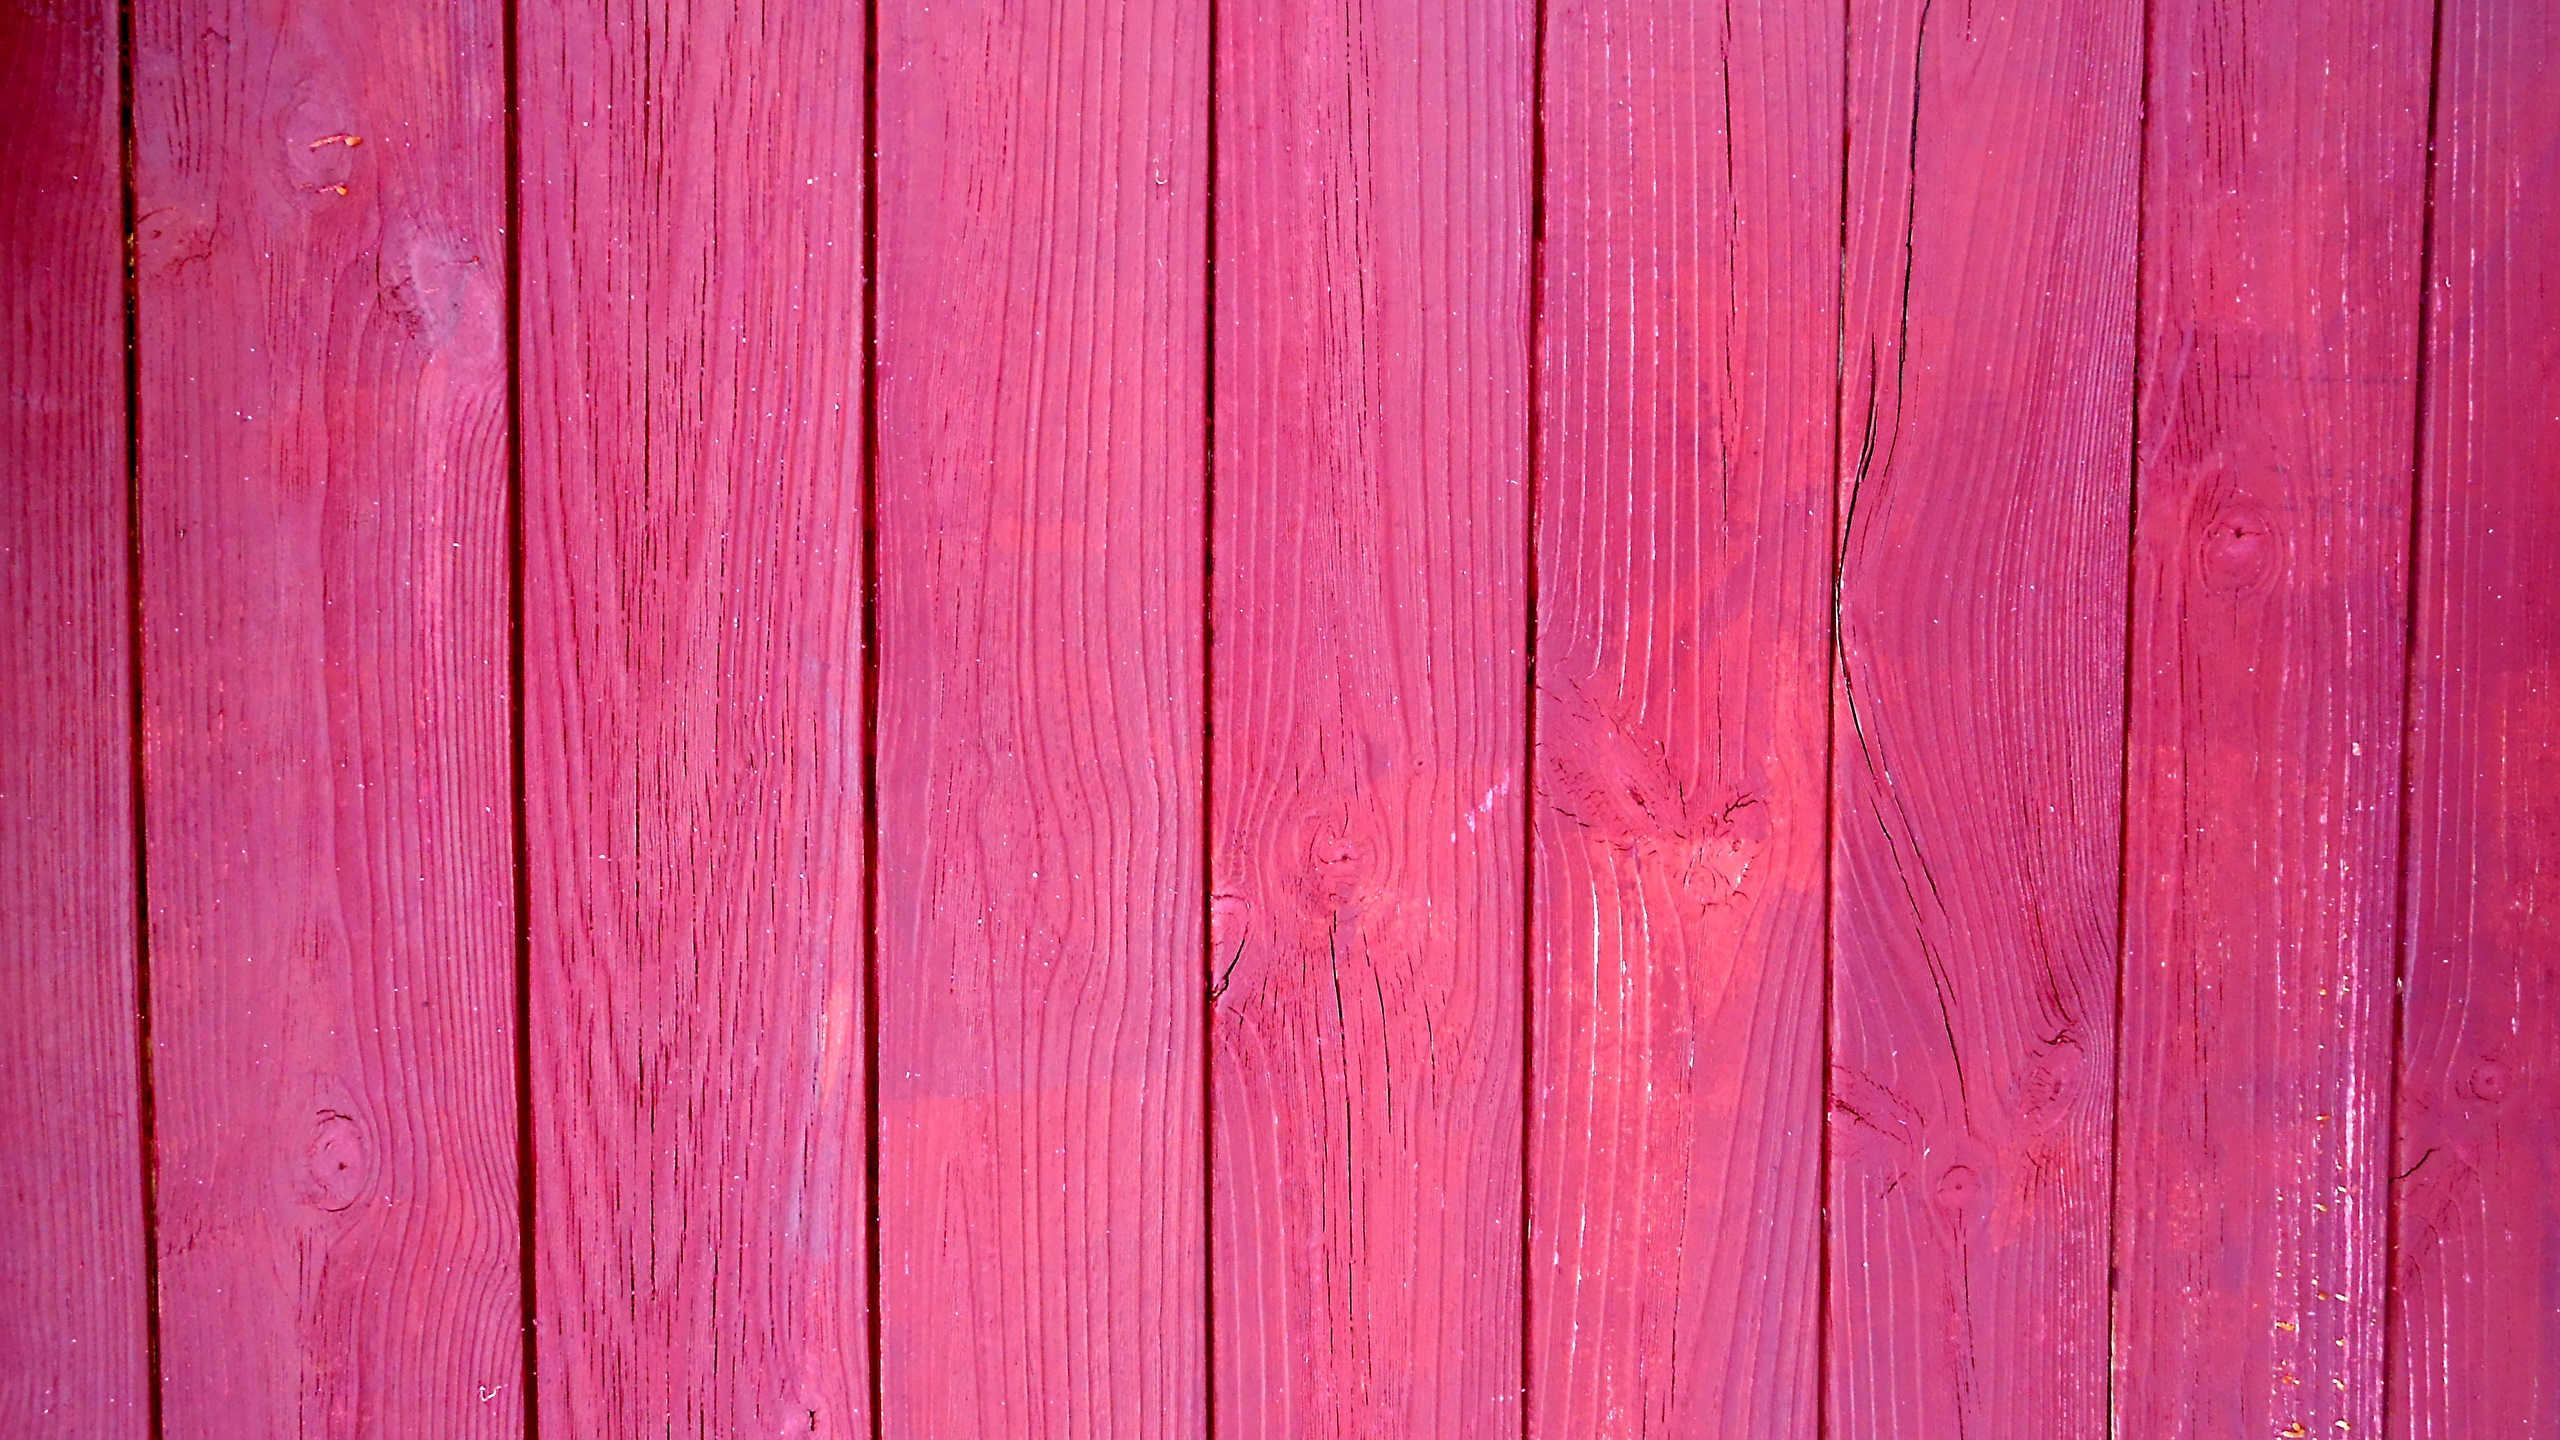 Texture_Wood_planks_Pink_color_554495_25